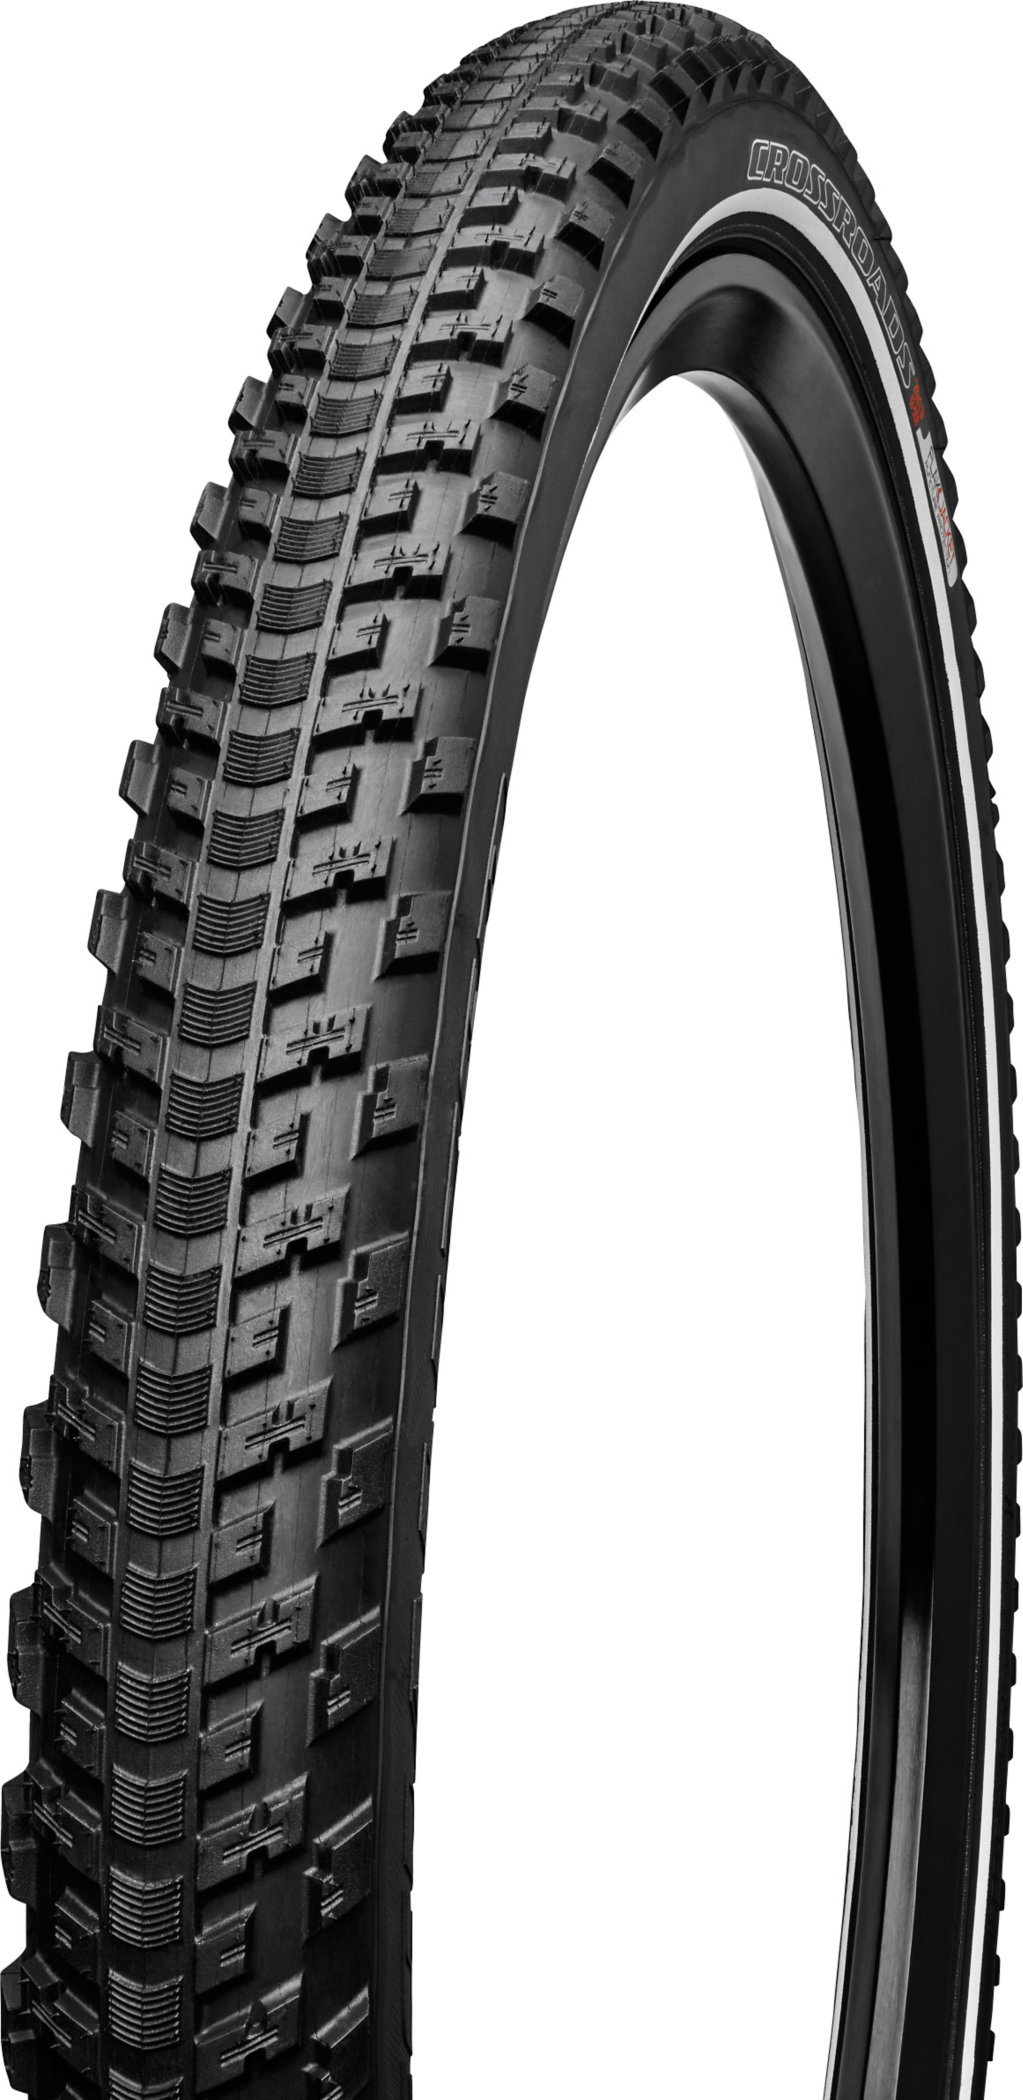 SPECIALIZED CROSSROADS REFLECT TIRE 700X38 - Alpha Bikes